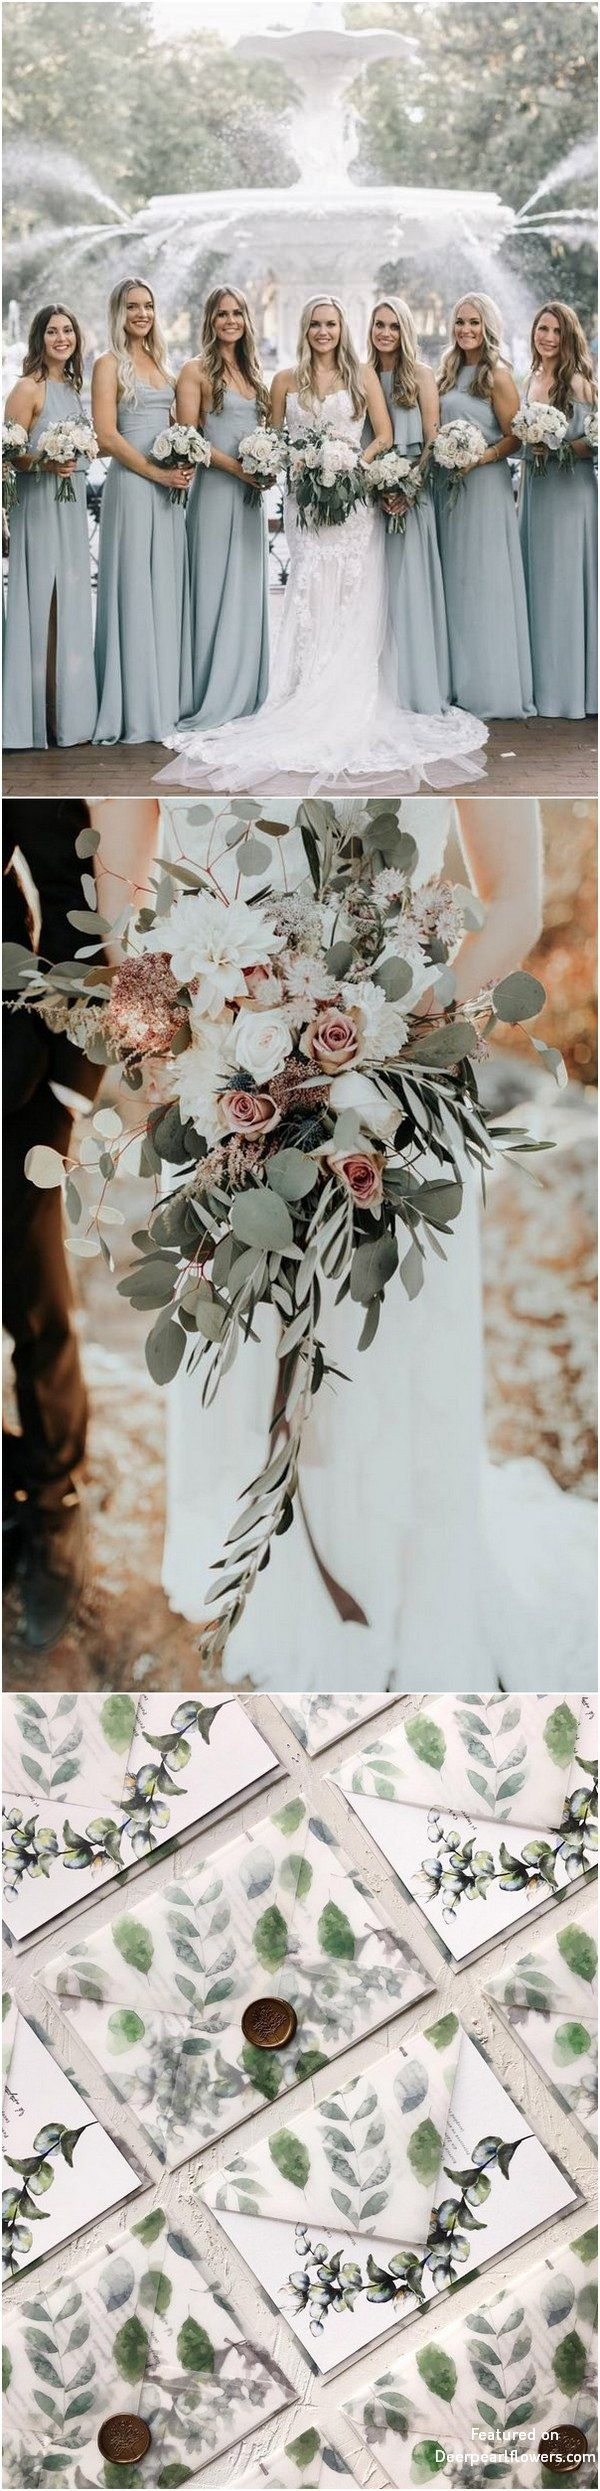 Wedding decorations to make february 2019 Top  Wedding Color Scheme Ideas for  Trends  Wedding thoughts